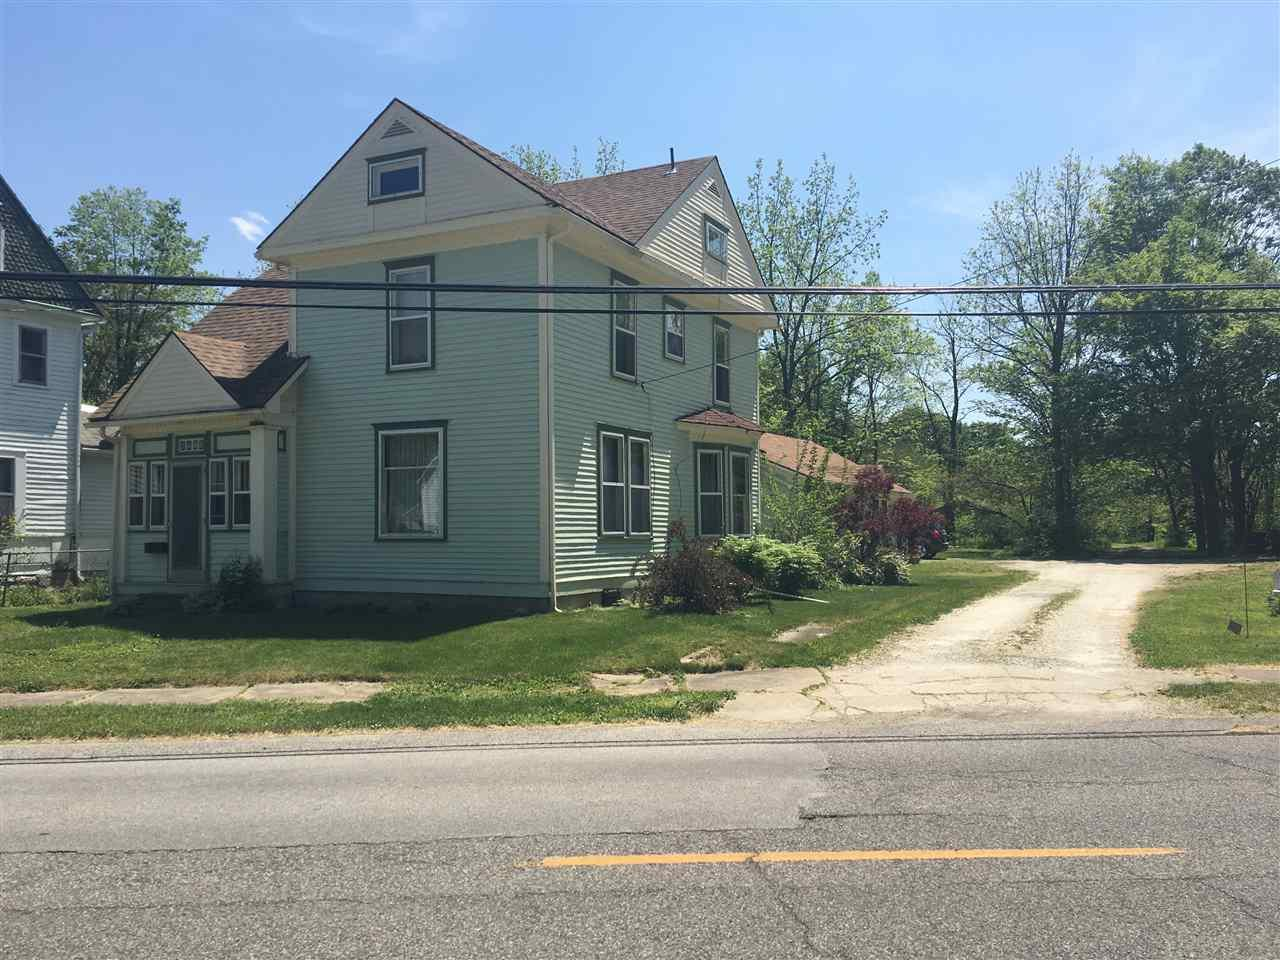 1465 Pike St, Wabash, IN 46992